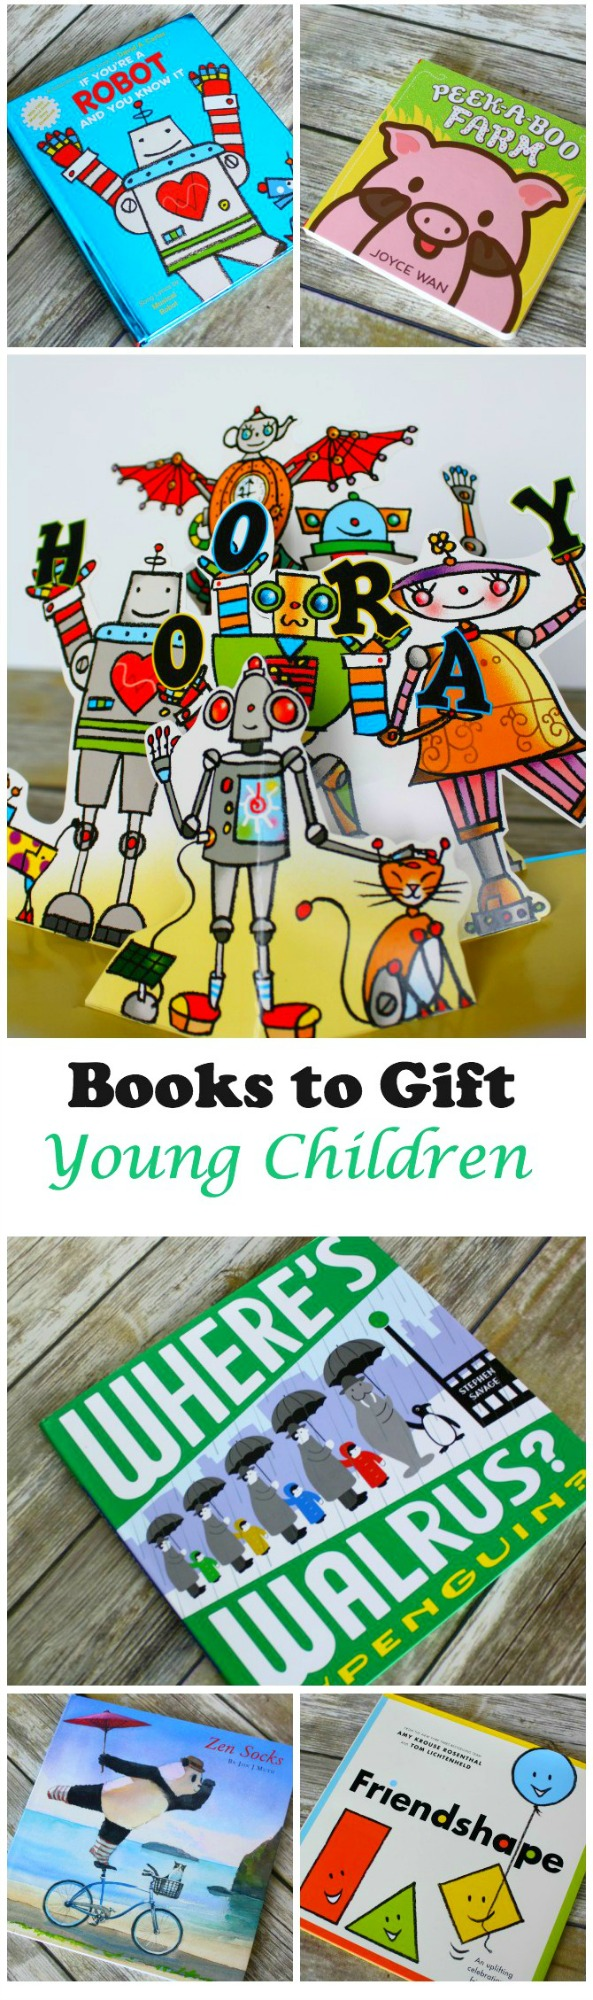 Books to Gift Young Children for the Holidays